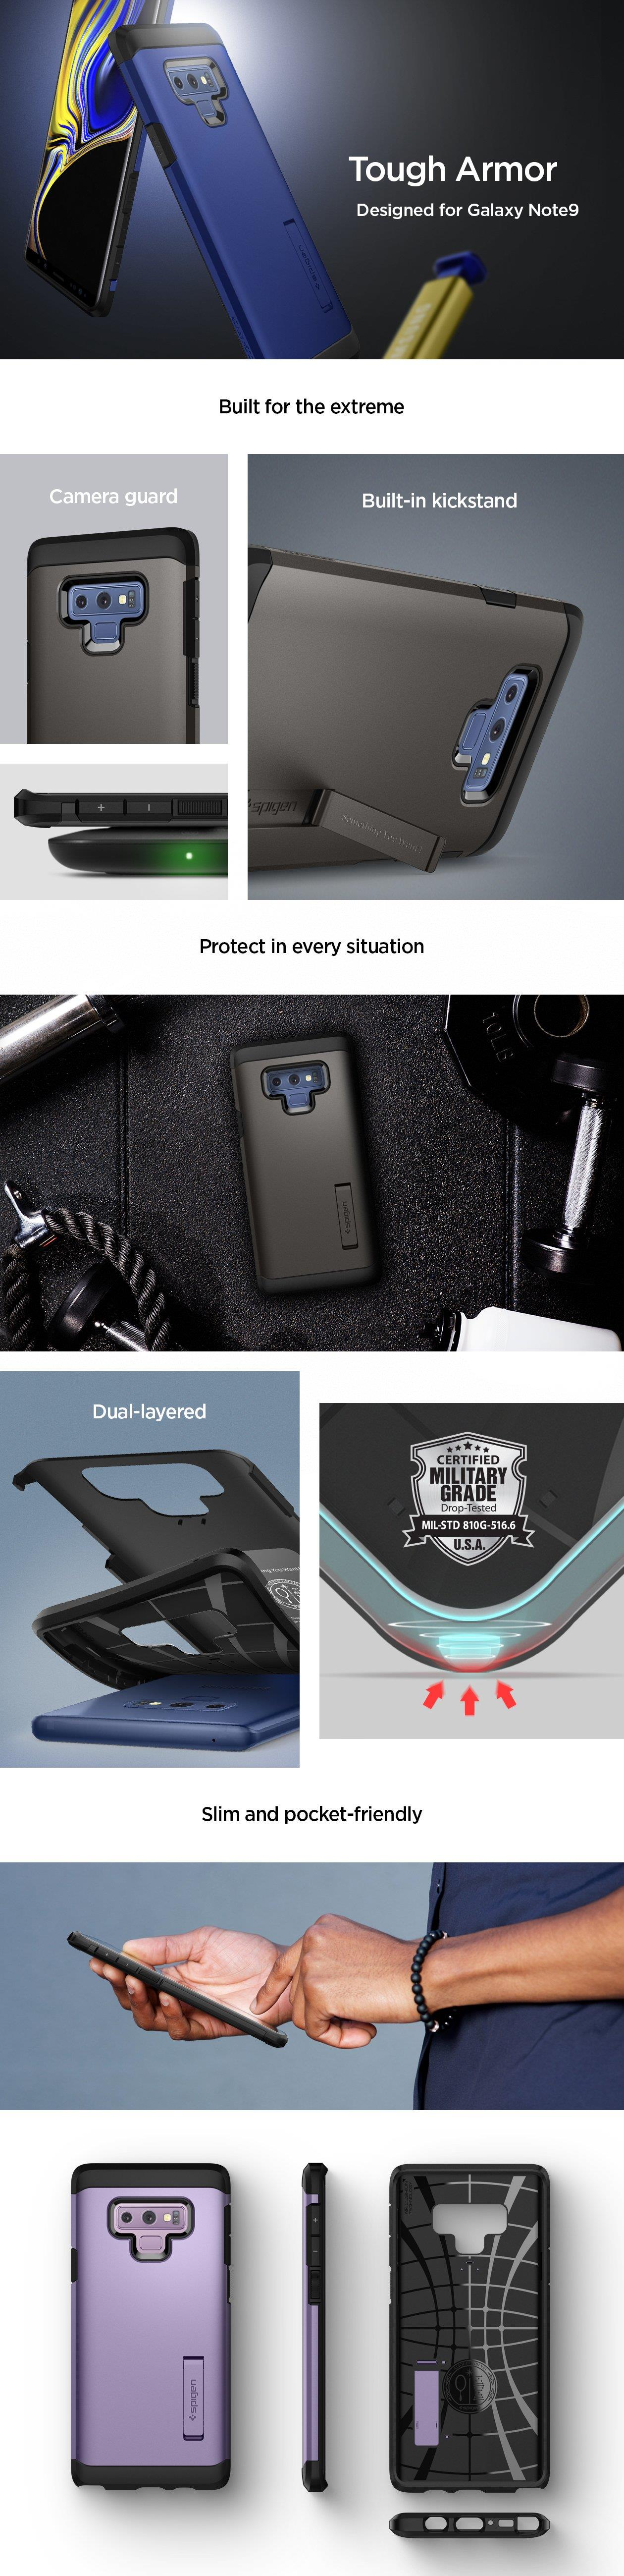 Buy The Spigen Galaxy Note 9 Tough Armor Case Black Drop Tested Wallet S Leather Built In Kickstand For Easy Hands Free Viewing Mil Grade Certified With Air Cushion Technology Access To Pen Precise Cutouts